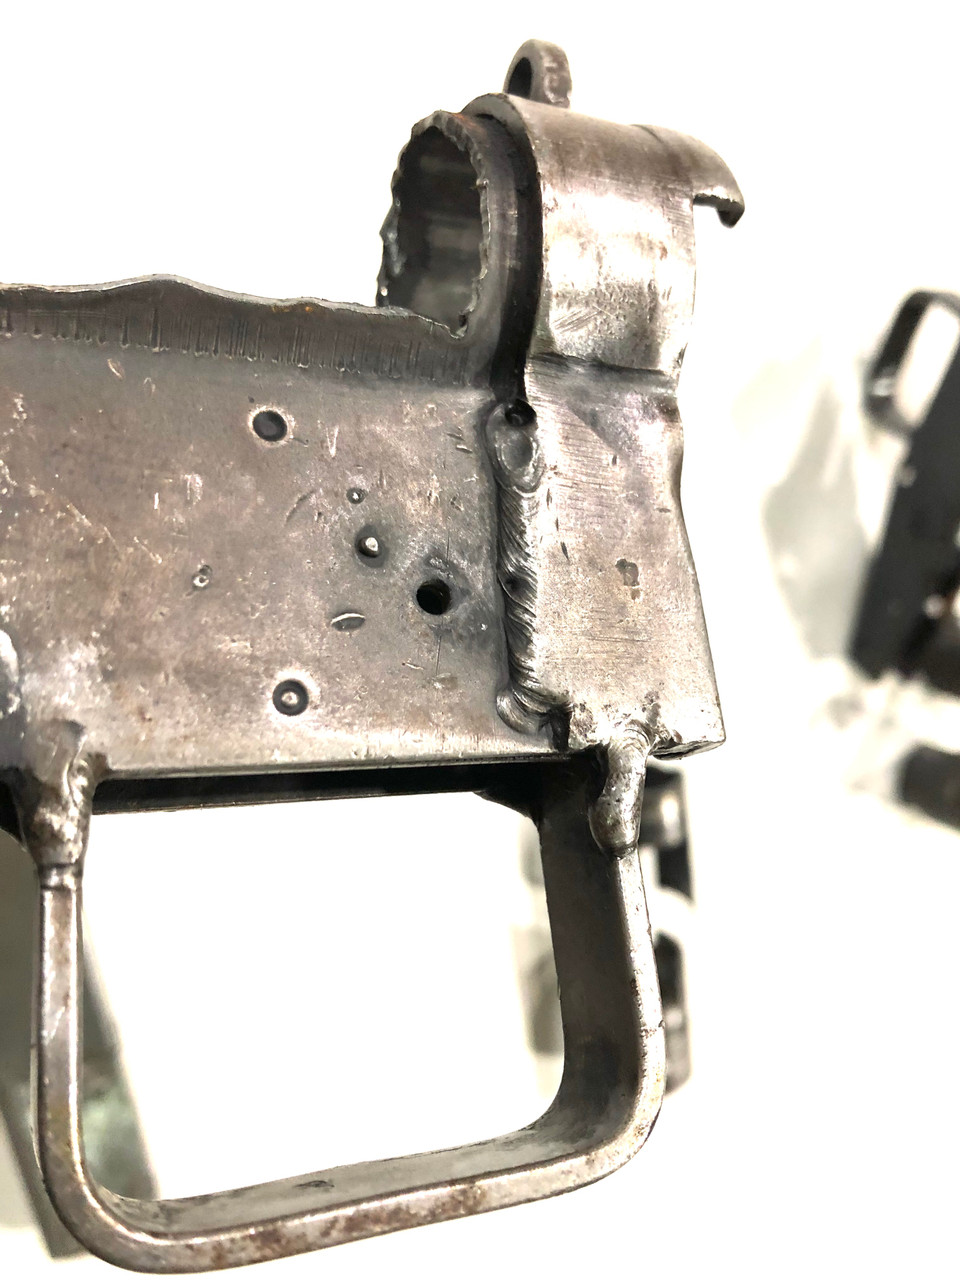 Lot 5: Two sets Early Wrapped MkII Cut Receiver Parts - both patterns - and 1 Magazine